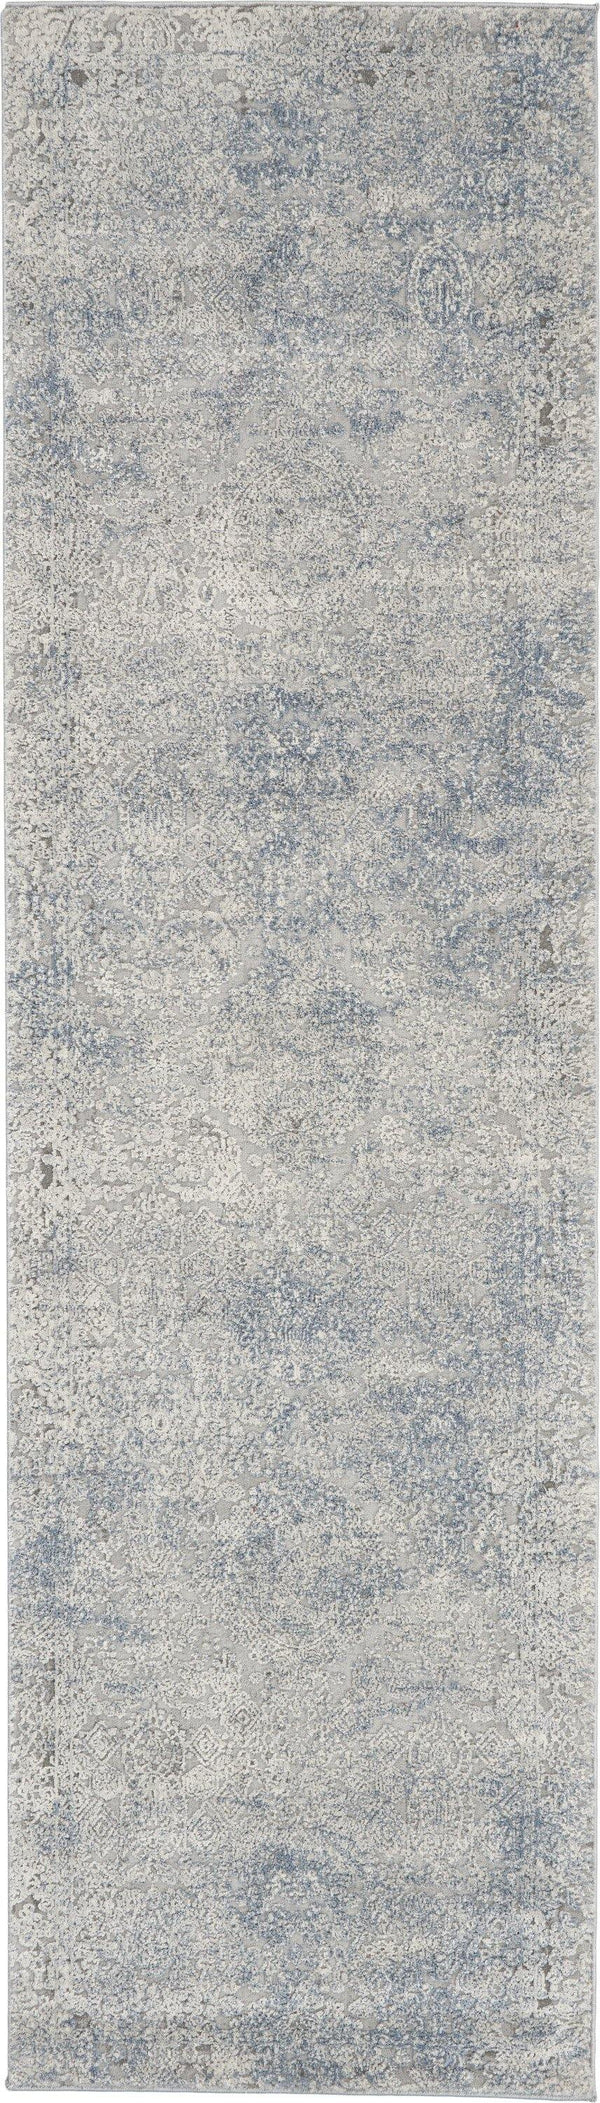 Nourison Rustic Textures RUS09 Ivory/Light Blue Area rug